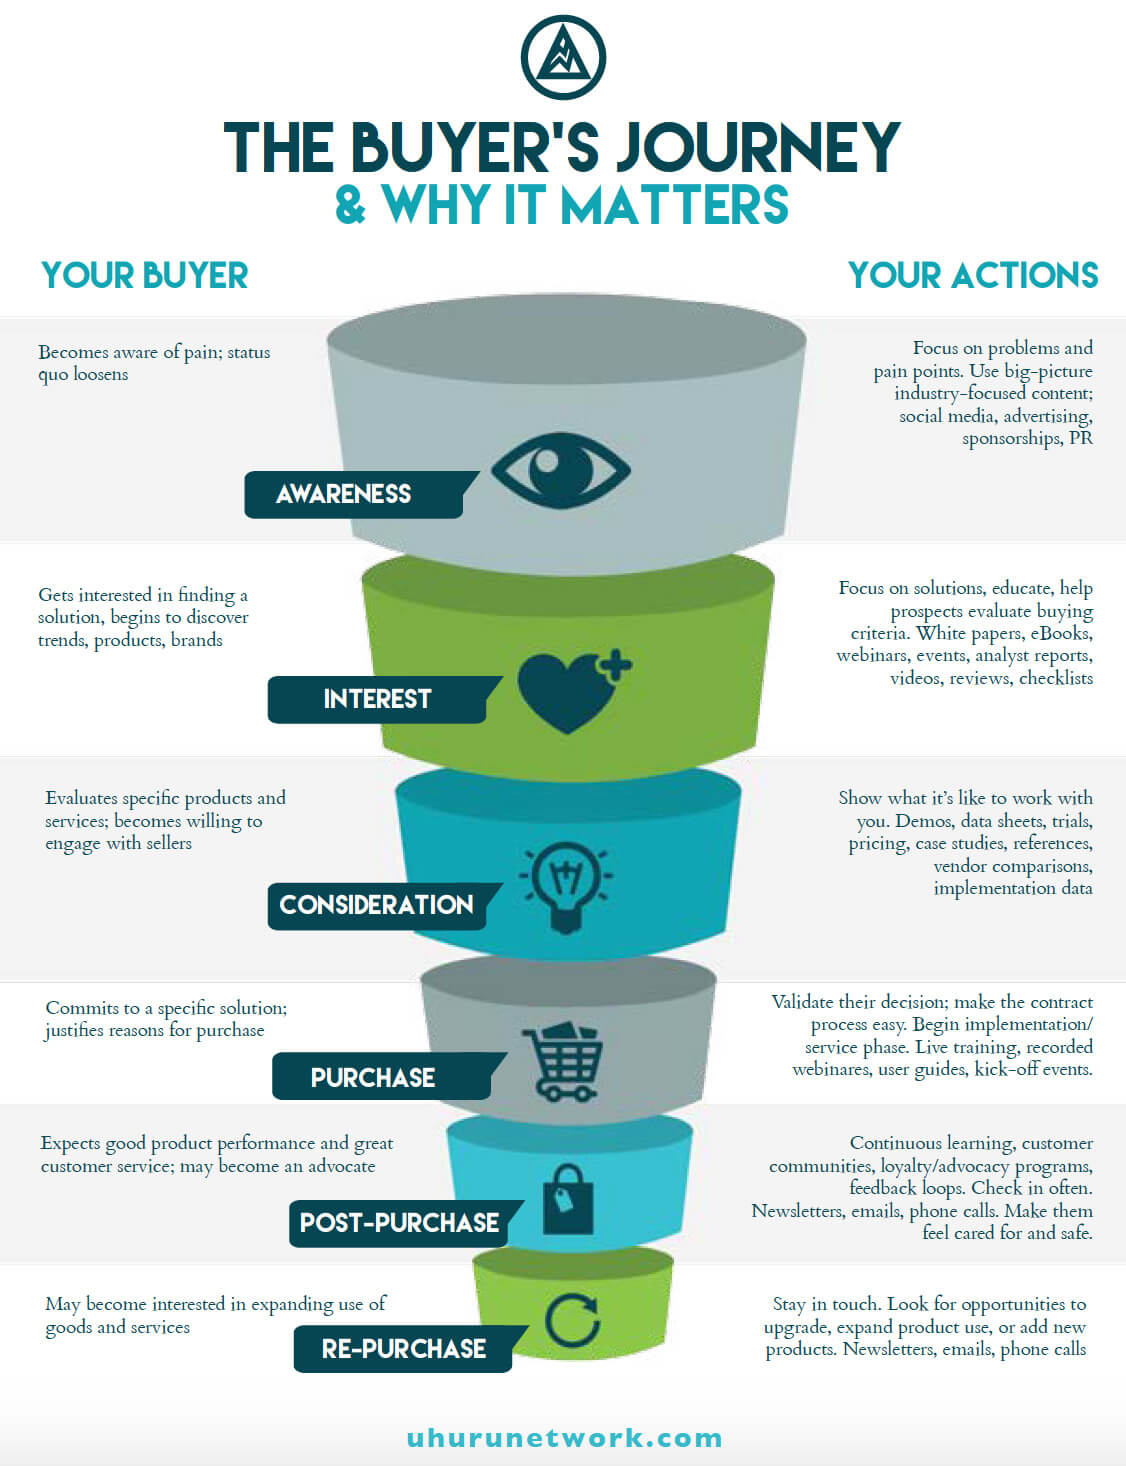 The Buyers Journey and Why It Matters digital marketing